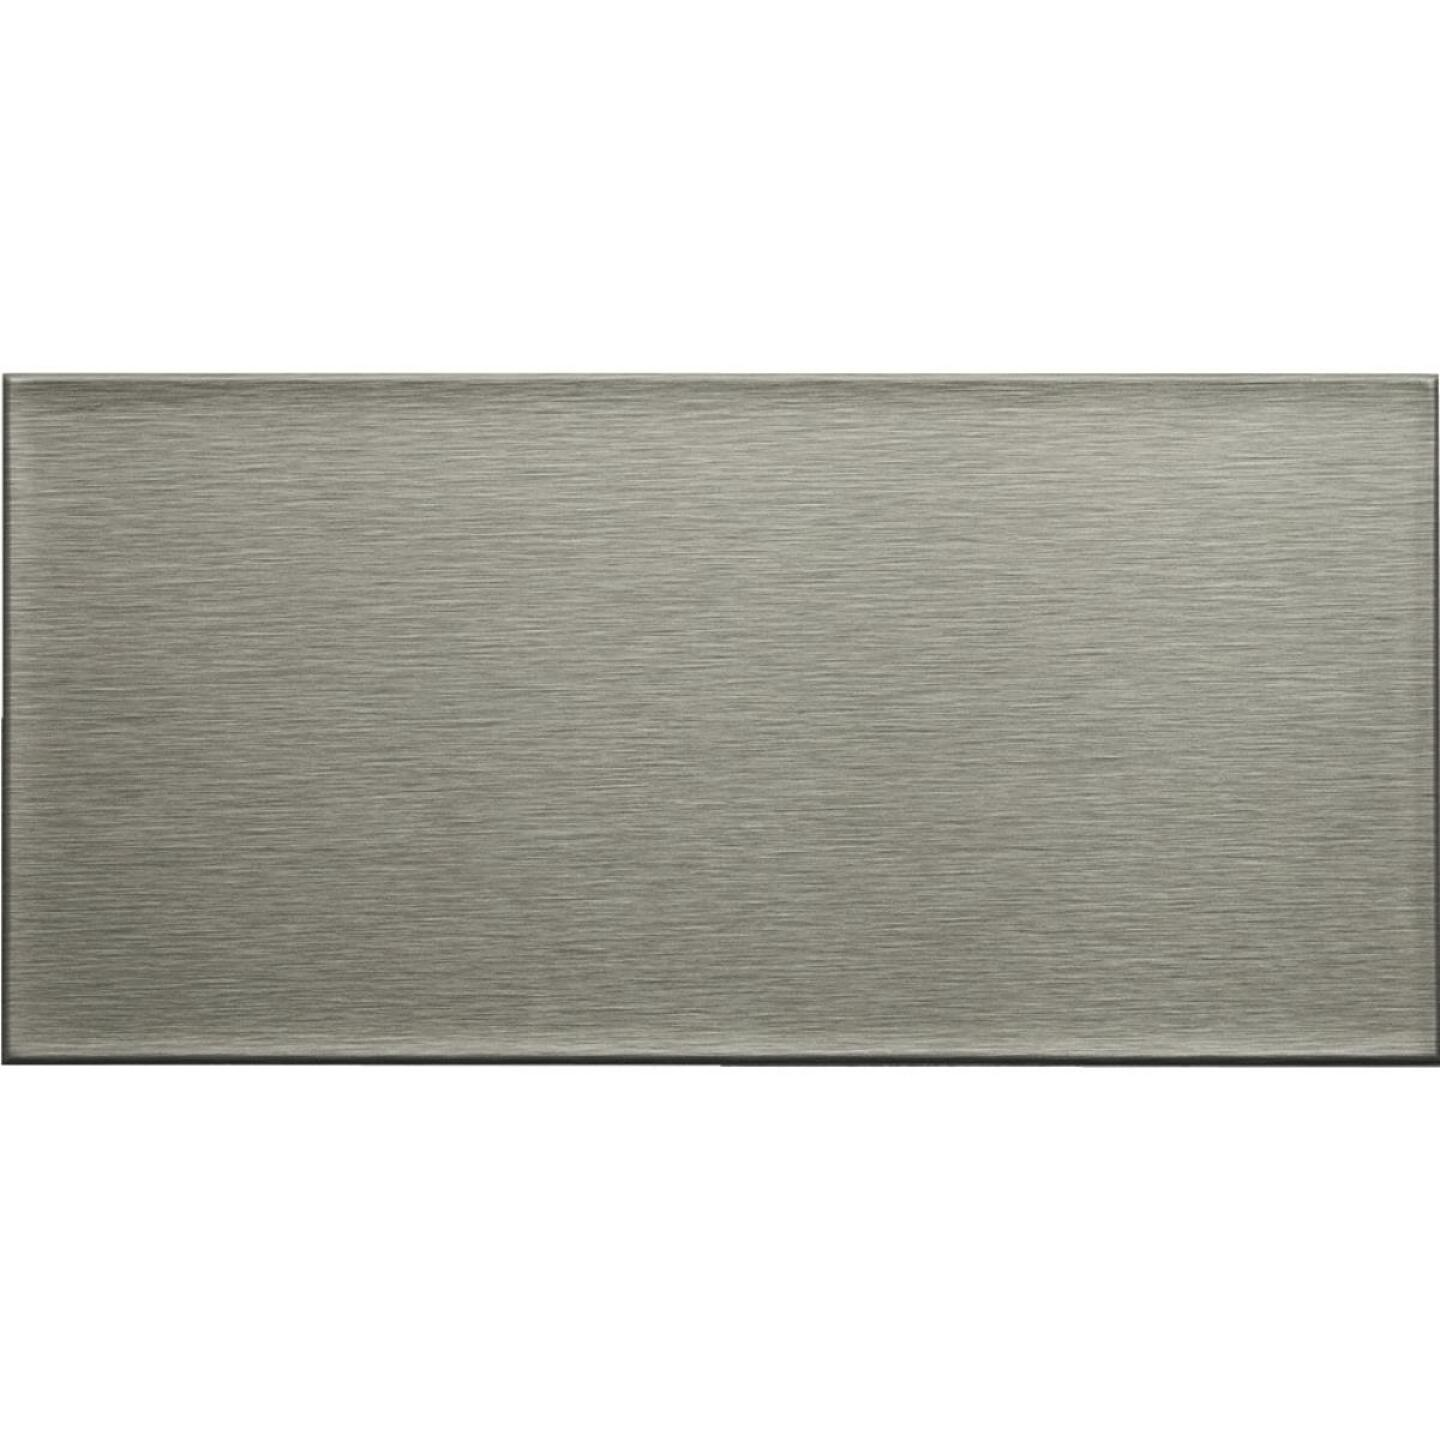 Aspect 3 In. x 6 In. Aluminum Backsplash Peel & Stick, Long Grain Stainless (8-Pack)  Image 1